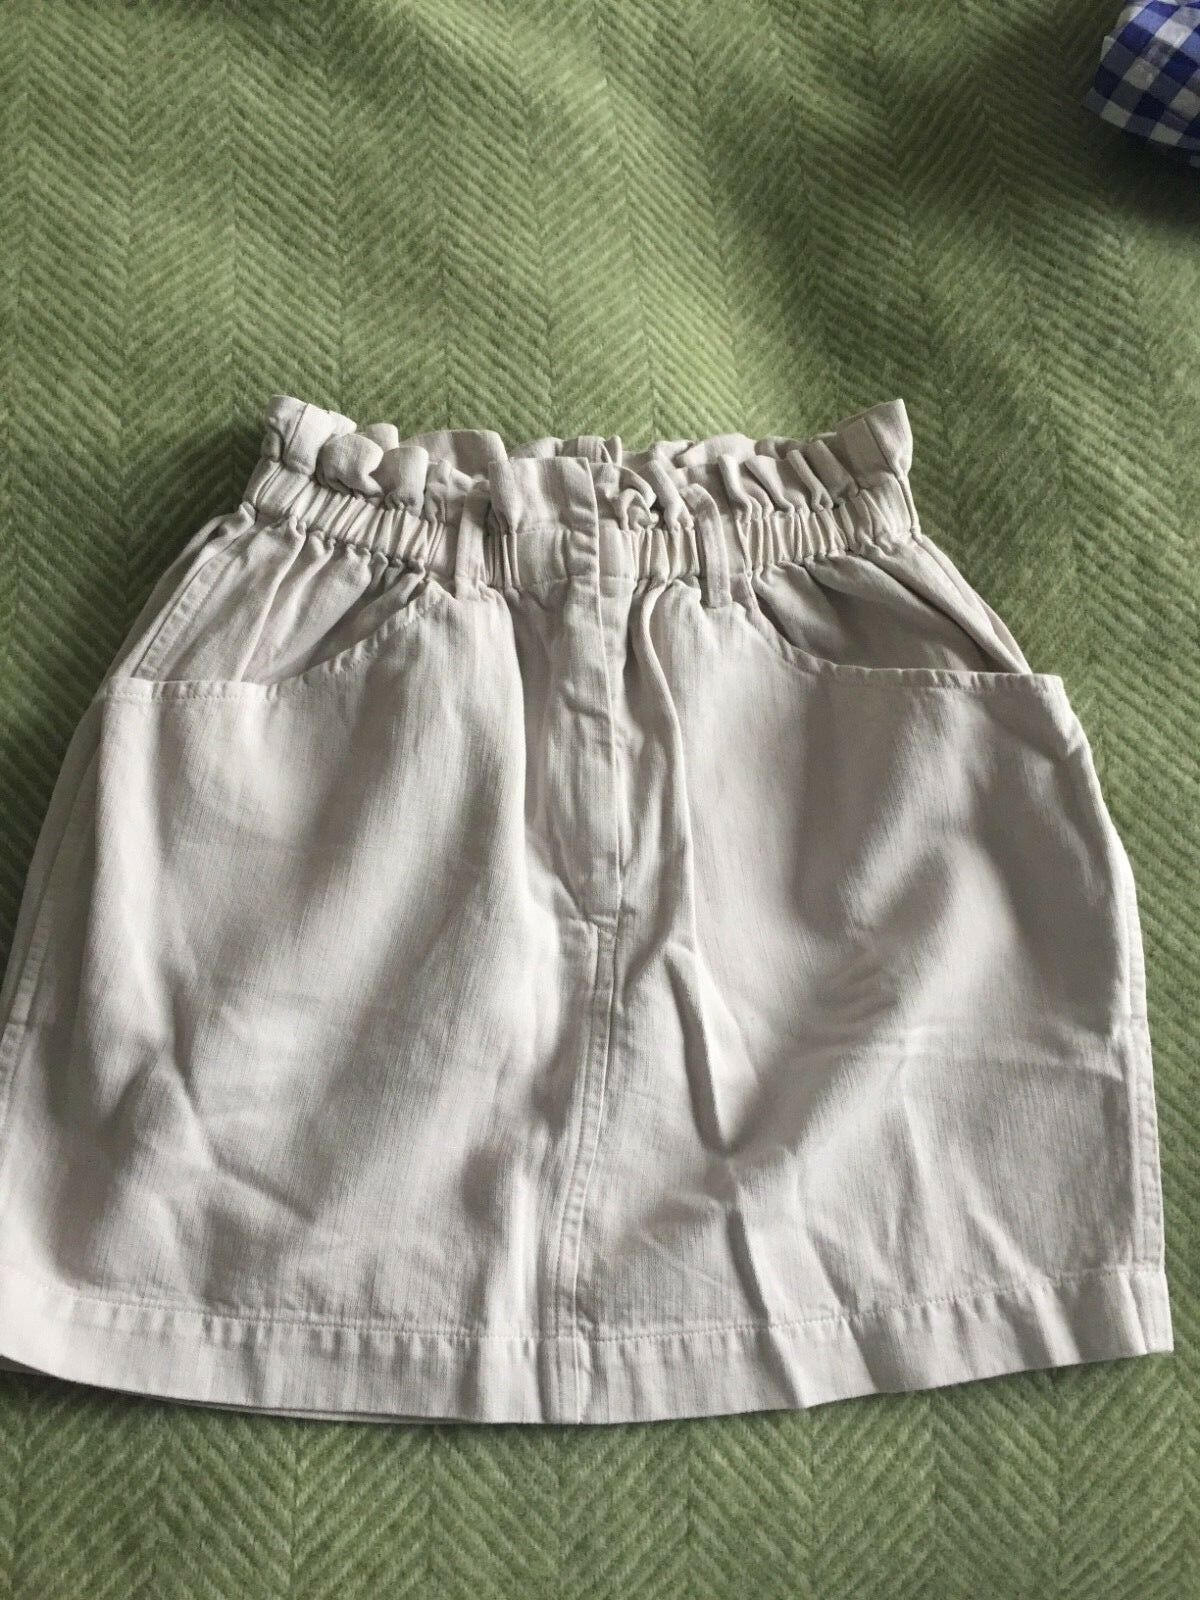 ISABEL MARANT WHITE MINi SKIRT SIZE 38